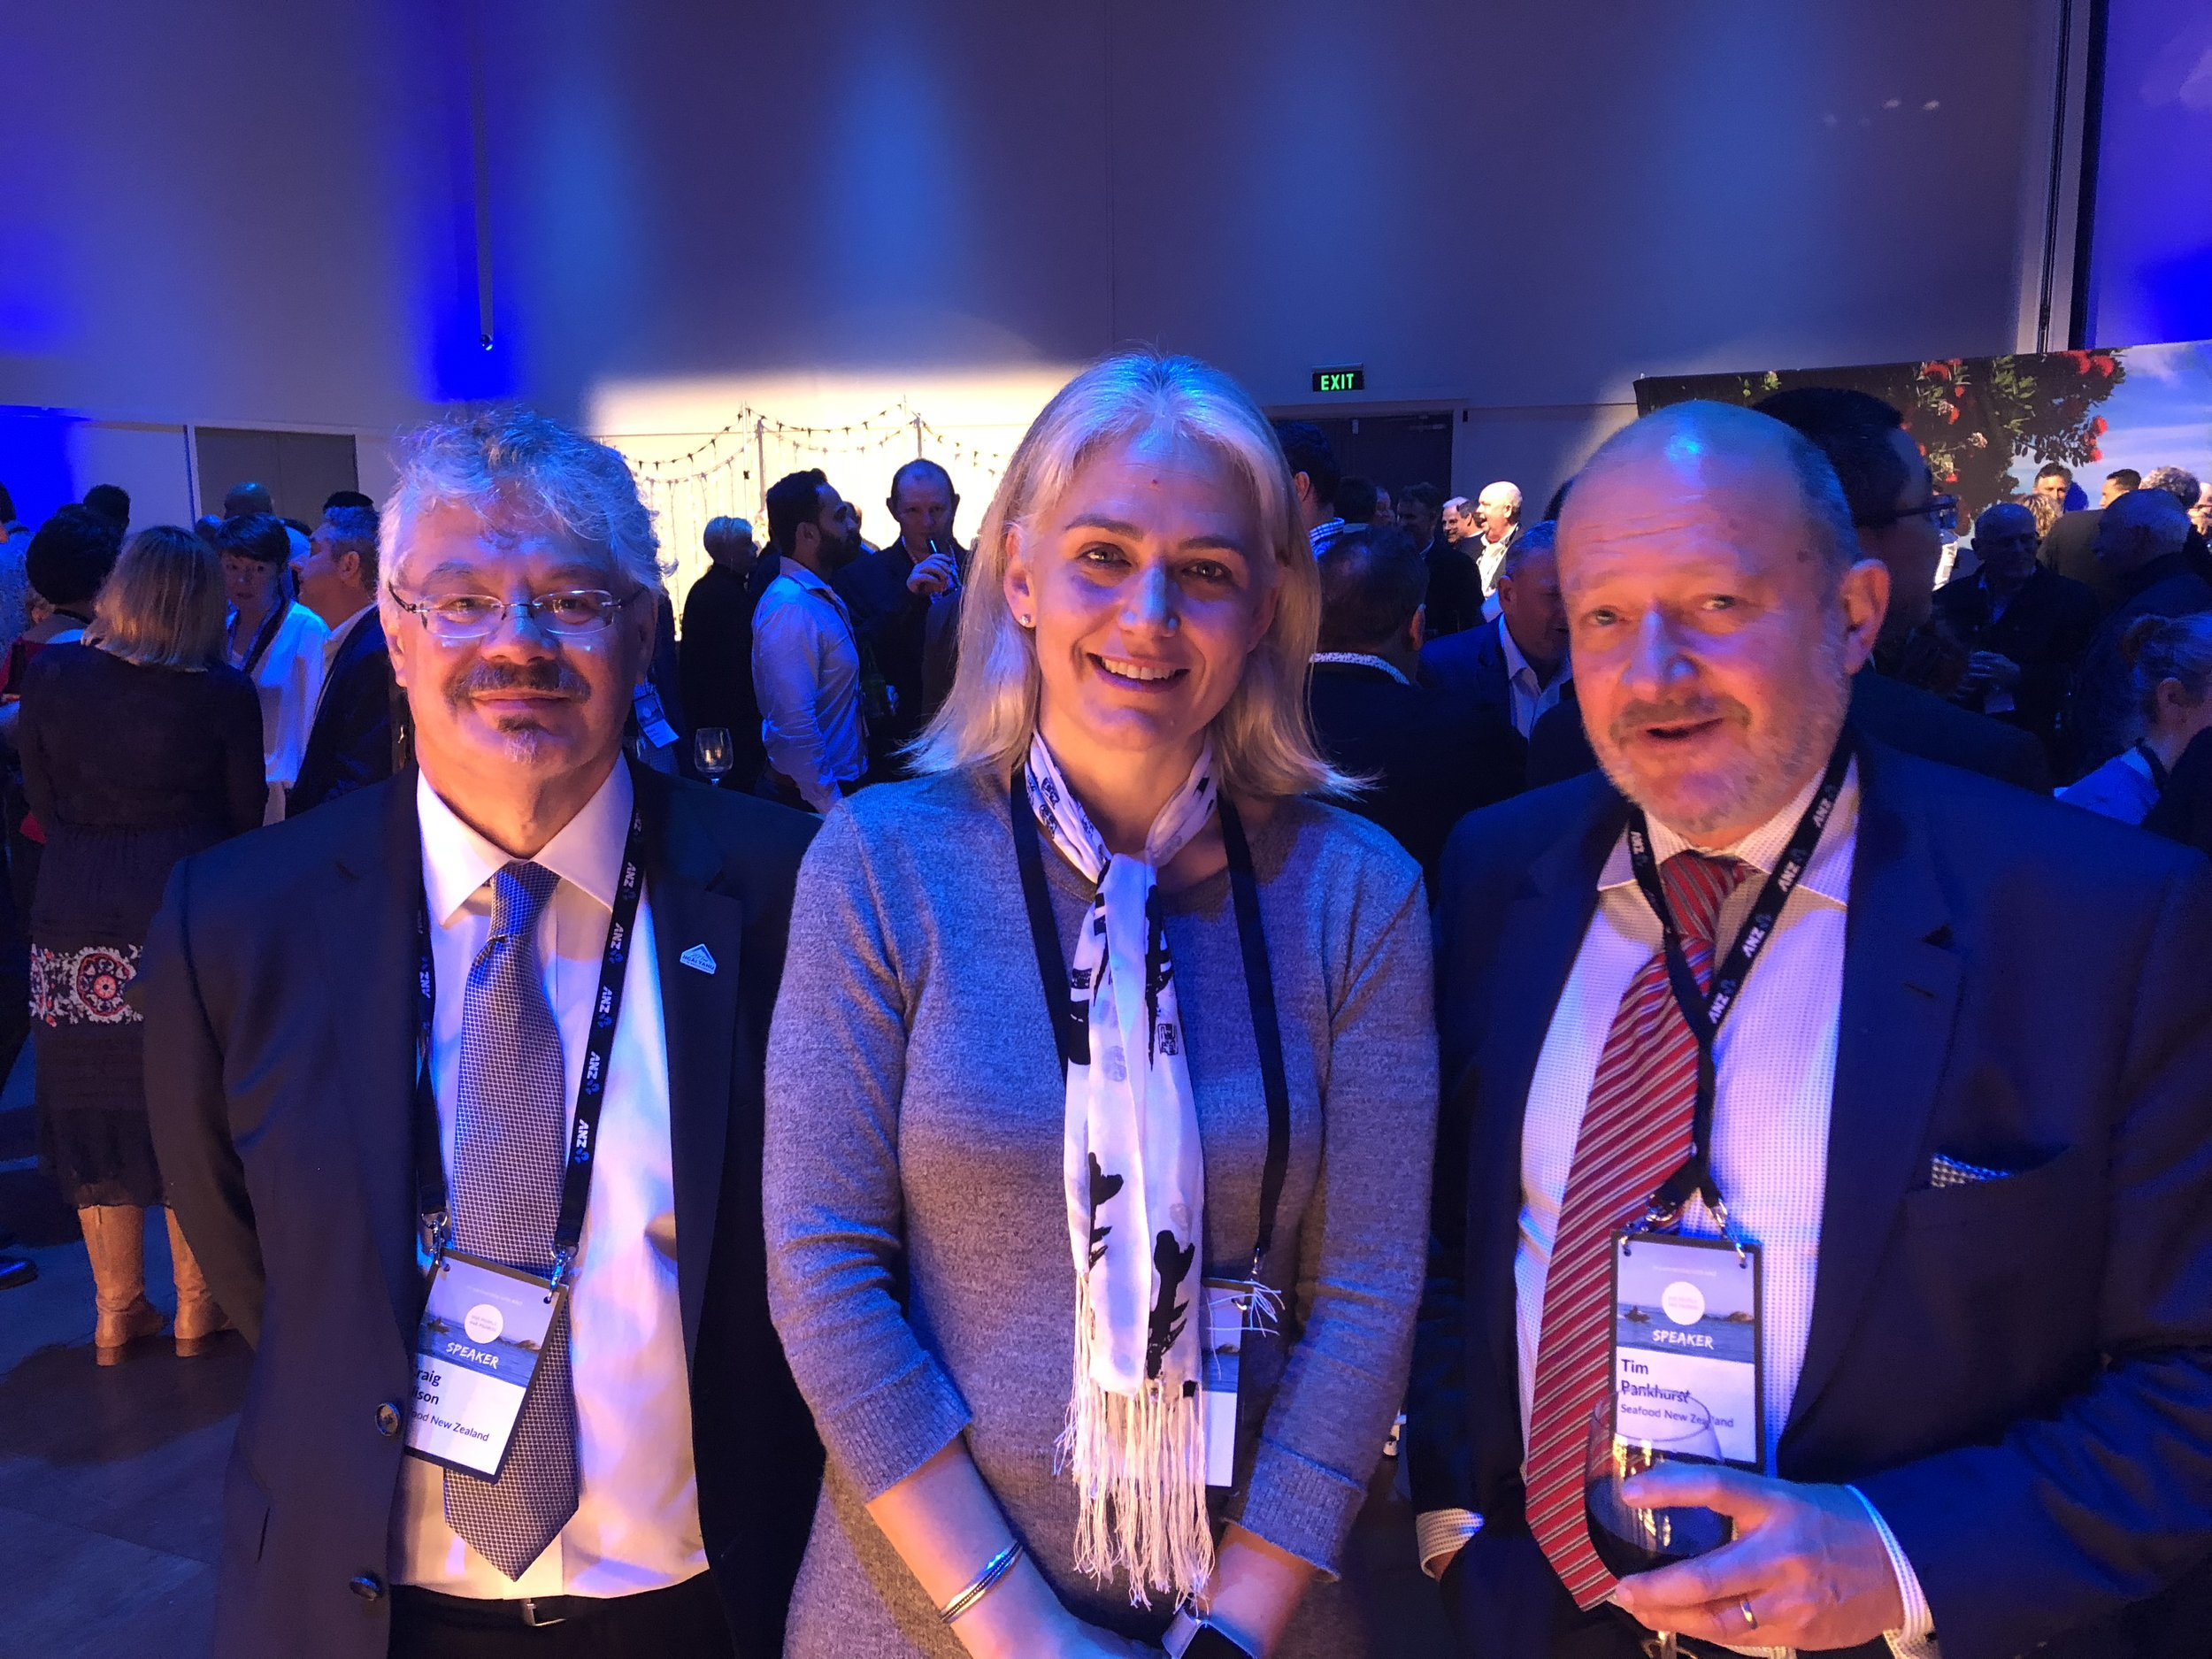 From left to right, Craig Ellison, Executive Chair Seafood New Zealand, Prof Moninya Roughan, Chief Scientist MetOcean Solutions, and Tim Pankhurst, Chief Executive Seafood New Zealand.